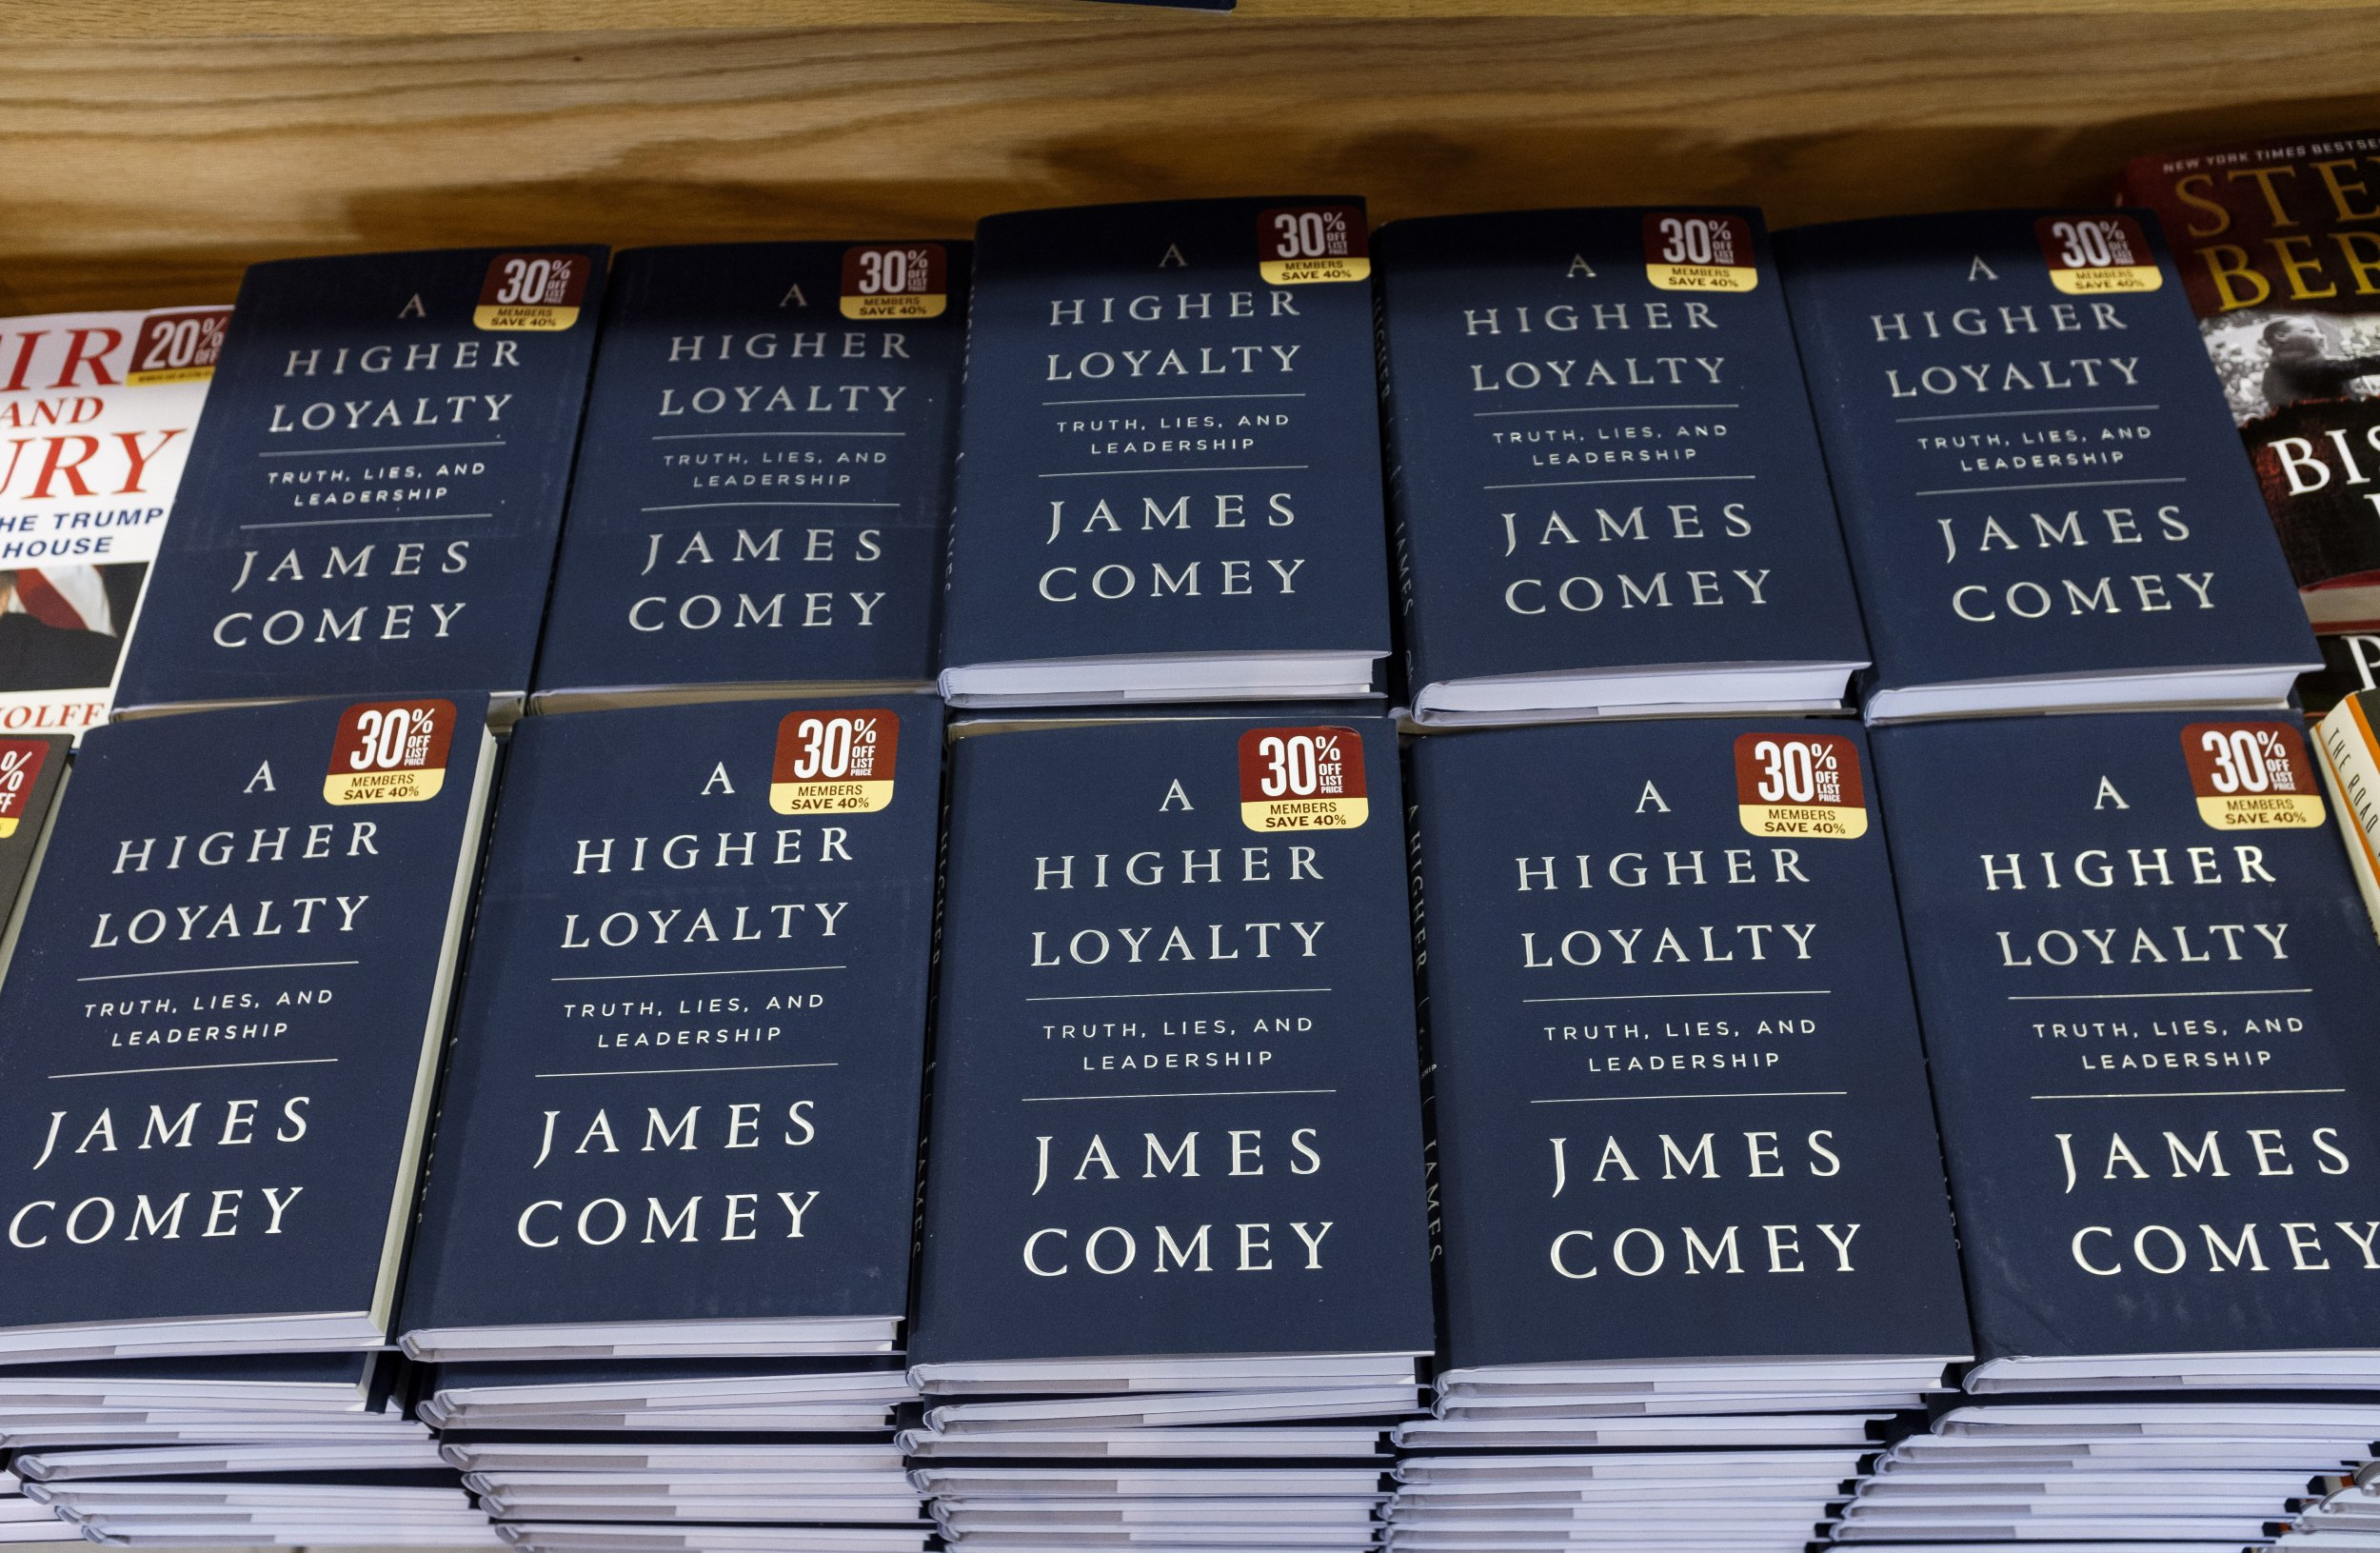 04_18_James_Comey_View